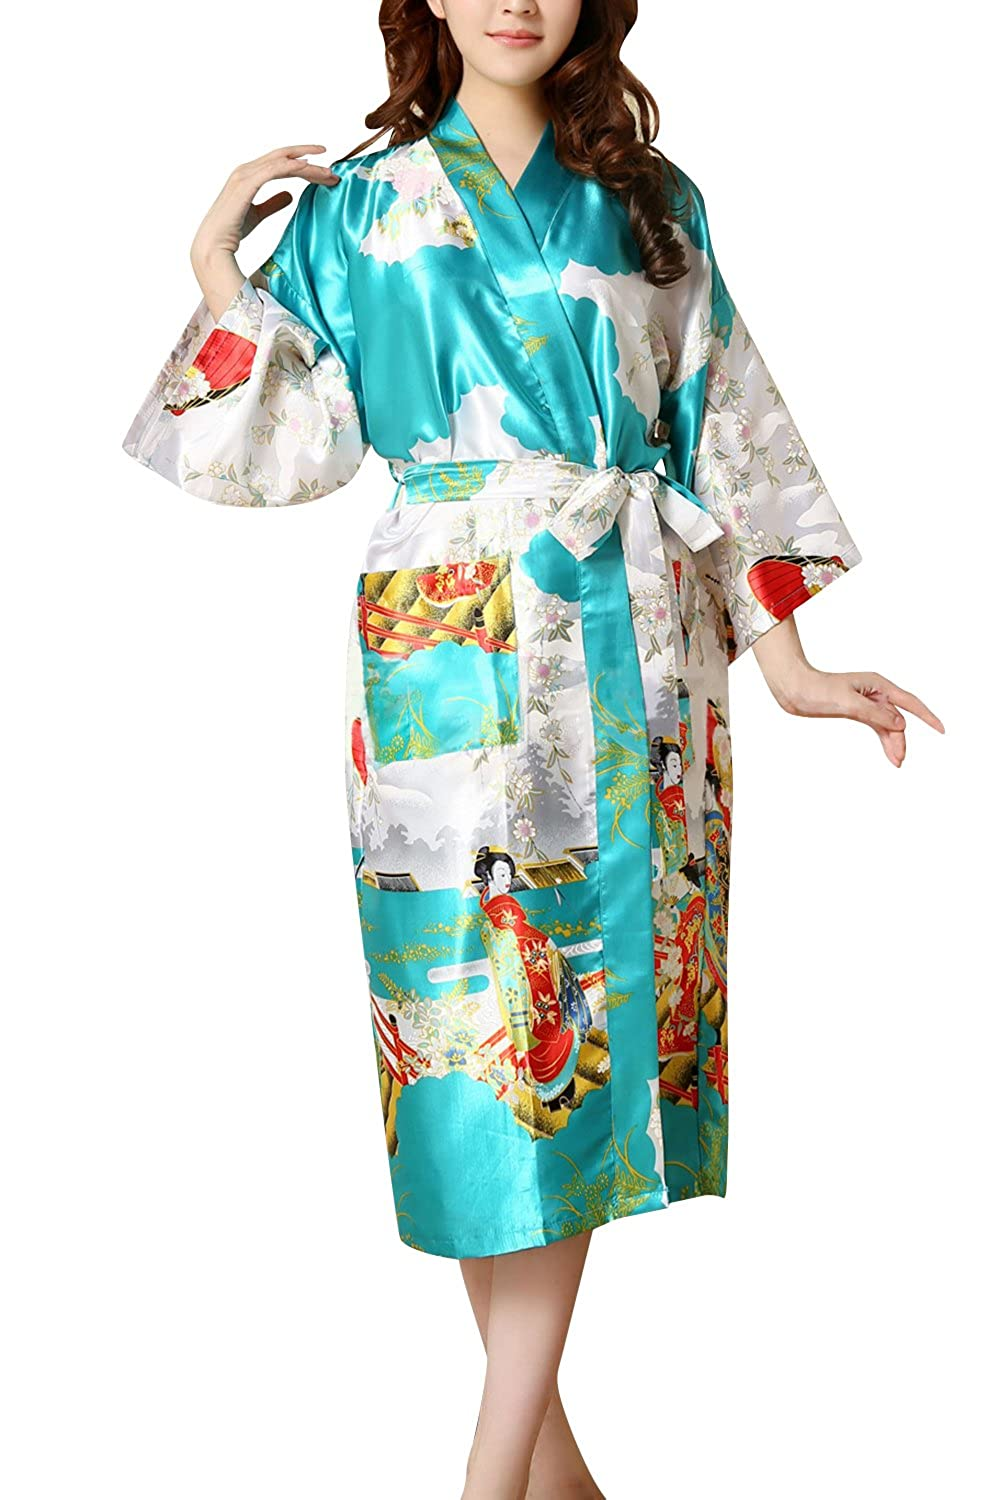 Dolamen Women's Dressing Gown Kimono, Silk Satin Geisha and Blossoms Robe Bathrobe Bridesmaid Nightwear Pyjamas, Long Style & 2017 New Style